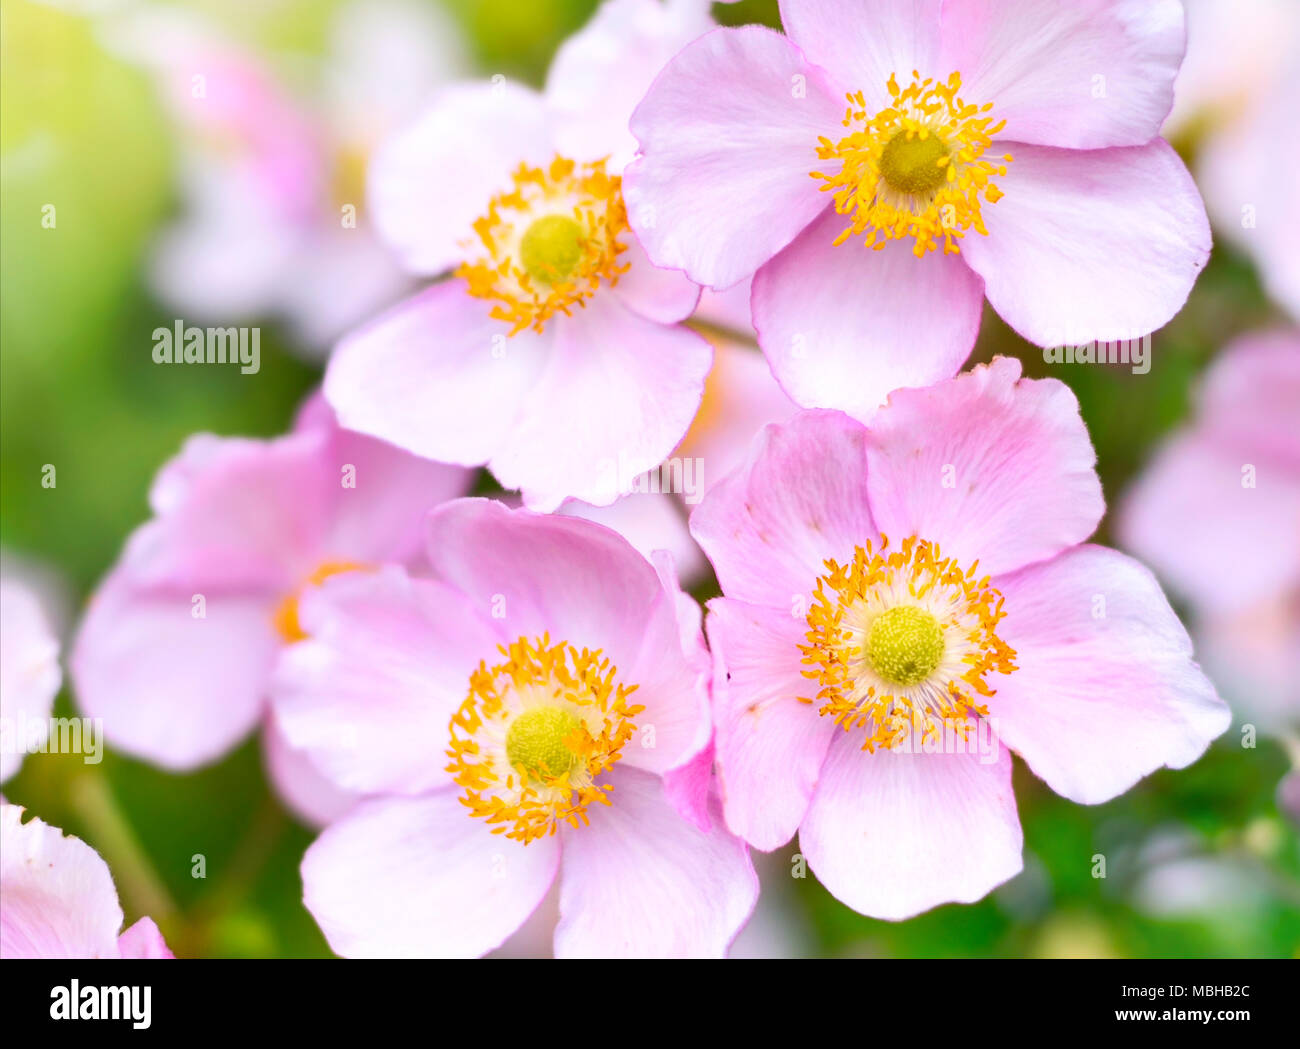 Anemone Hupehensis Or Thimble Weed In The Sunlight Autumn Flowers